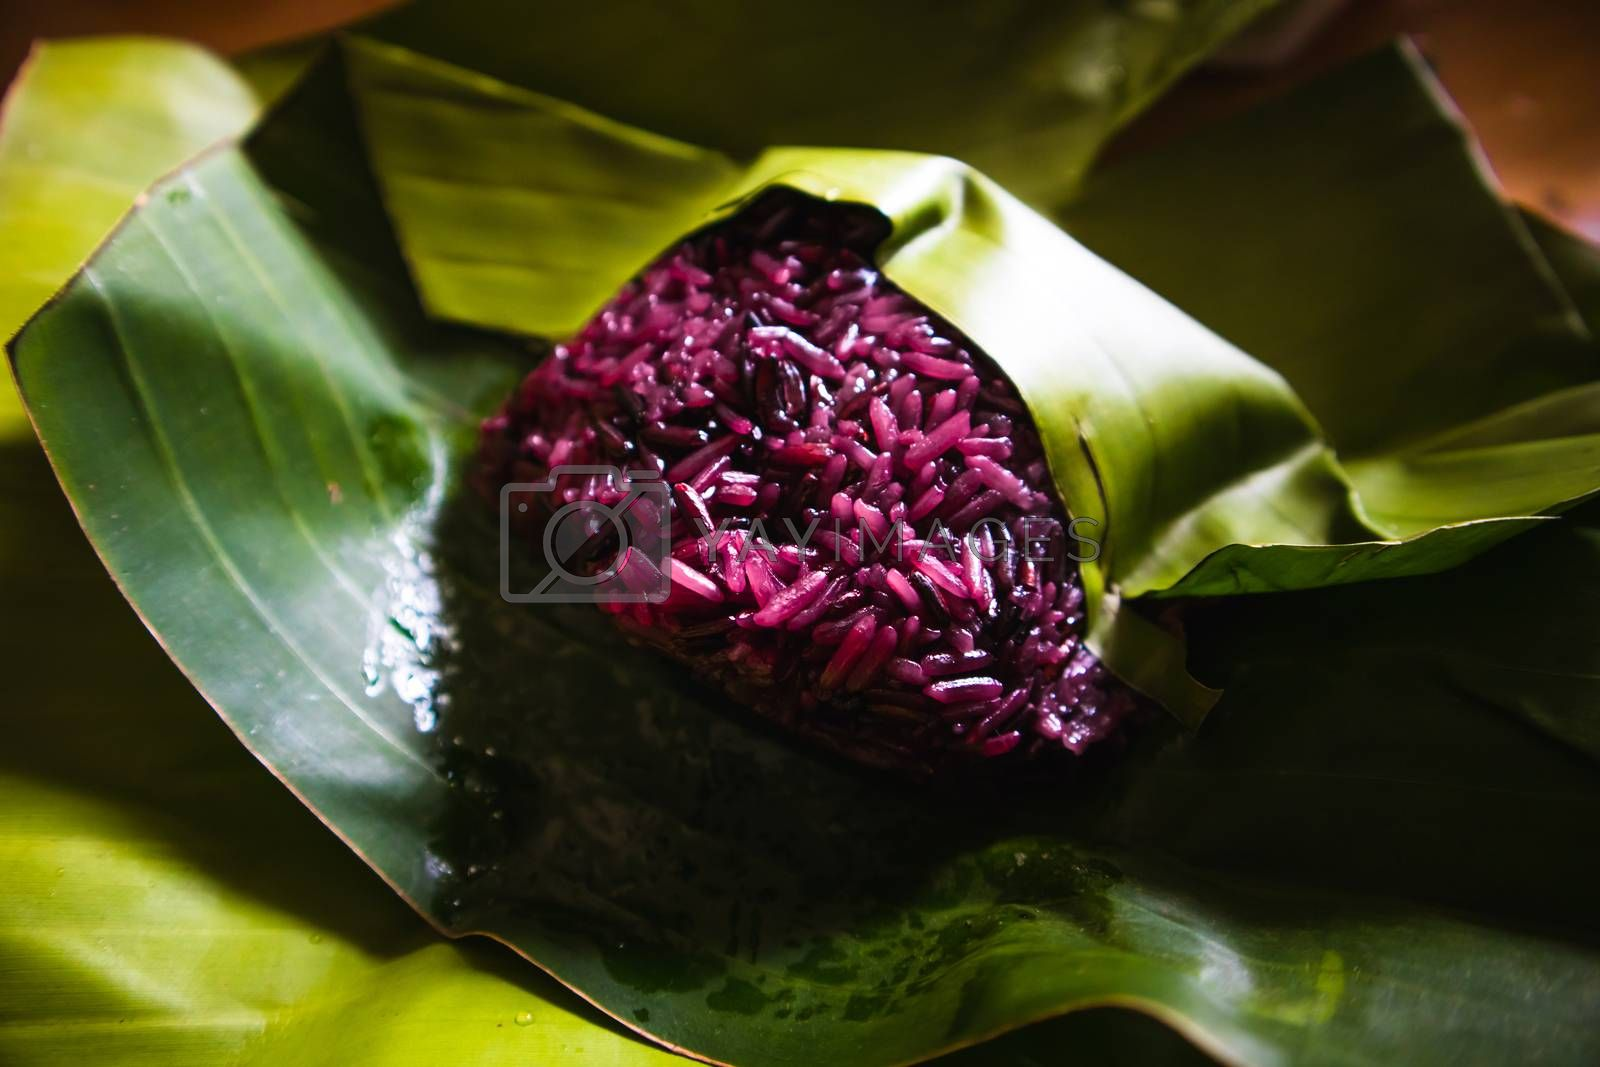 Purple sticky rice on banana leaf package. Organic food background concept.